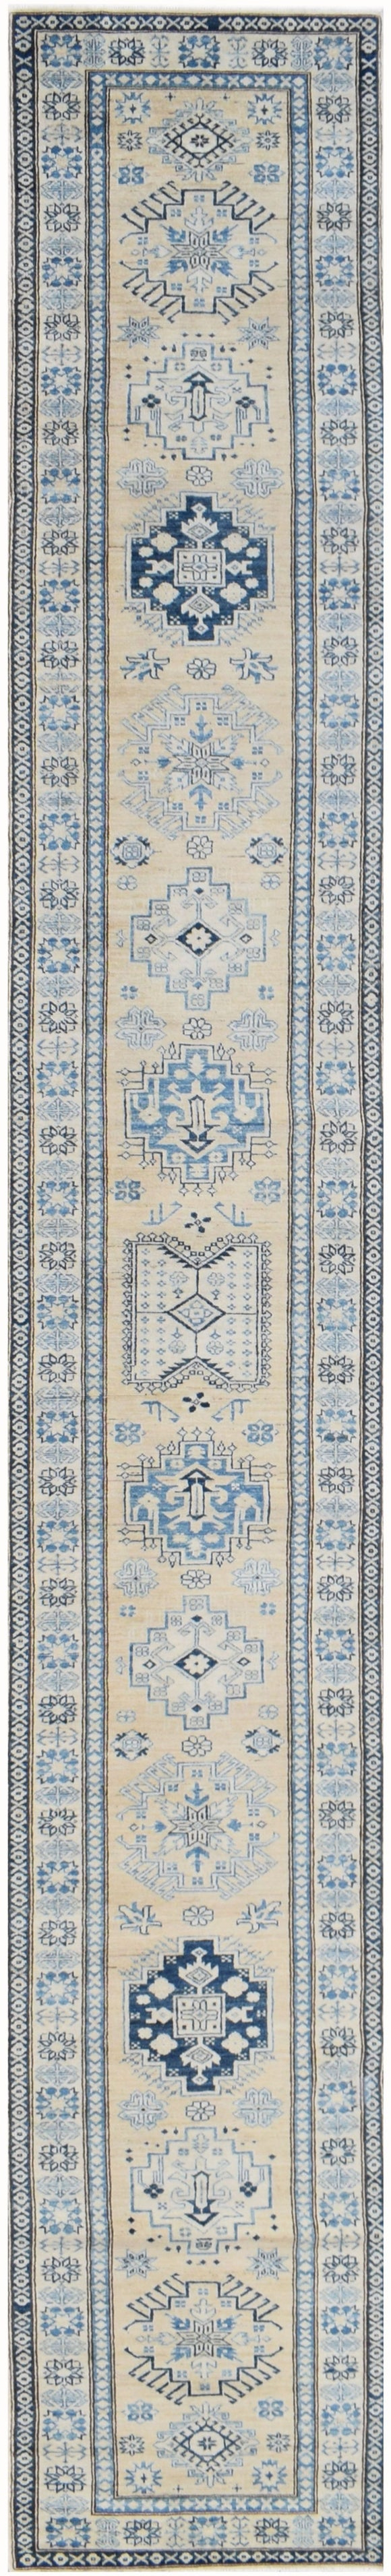 Handmade Super Sultan Collection Hallway Runner | 582 x 84 cm | 19'10